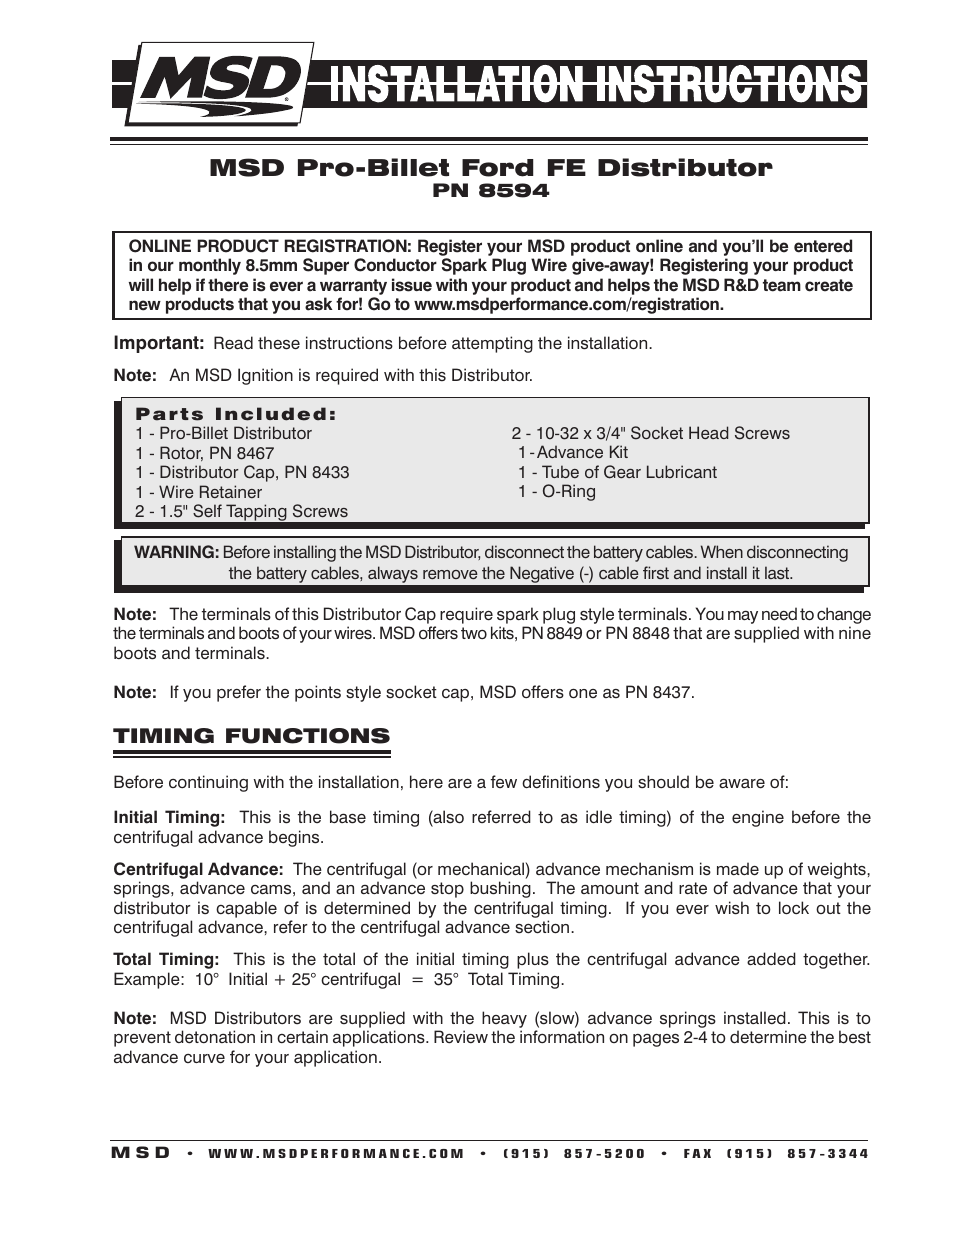 hight resolution of msd 8594 ford fe pro billet distributor installation user manual 8 pages